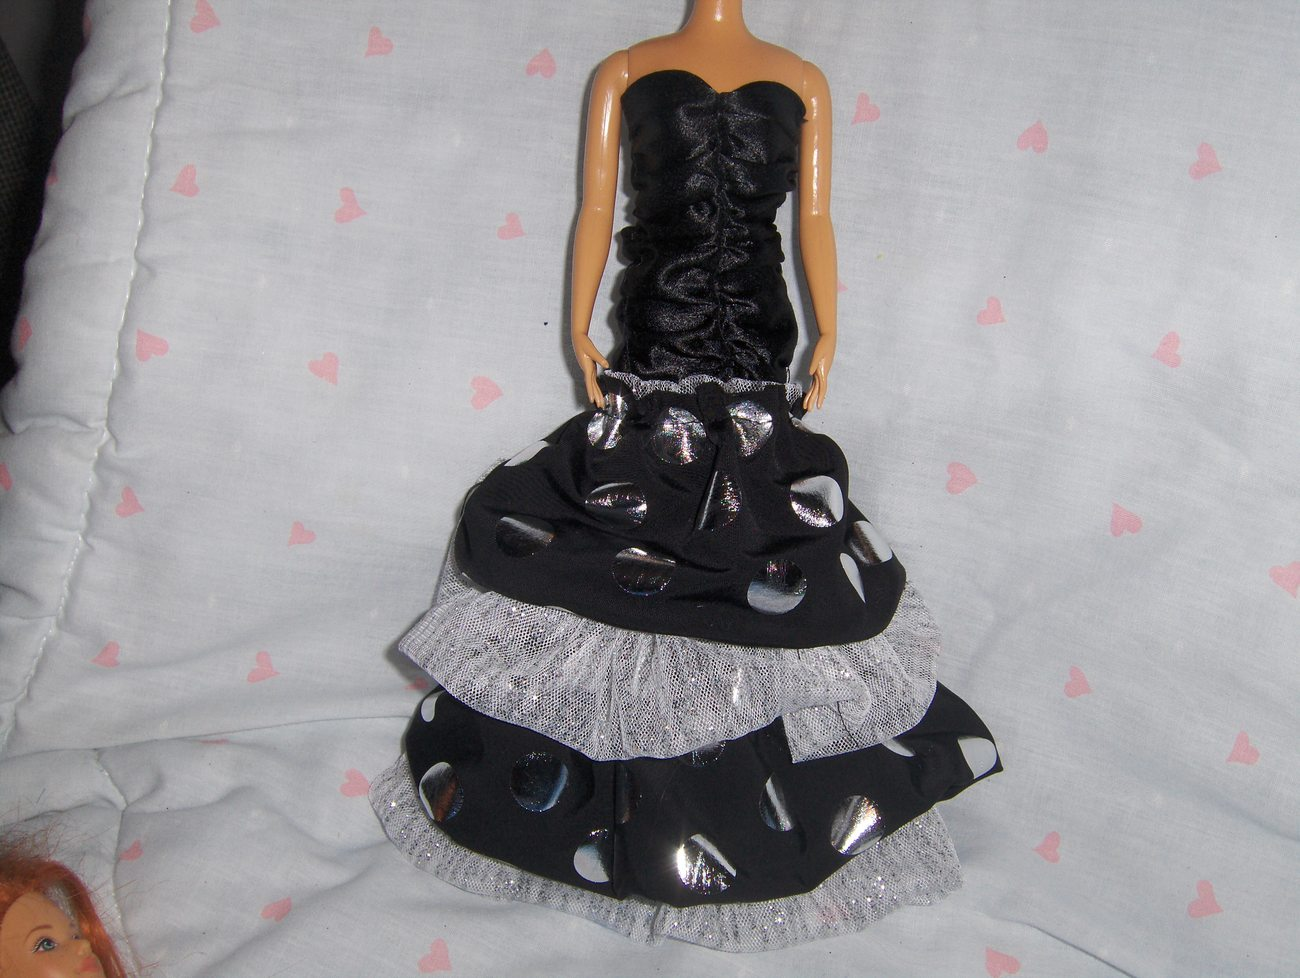 Black Satin Shirred Dress with 3 layers of Ruffles fits Barbie and most Fashion